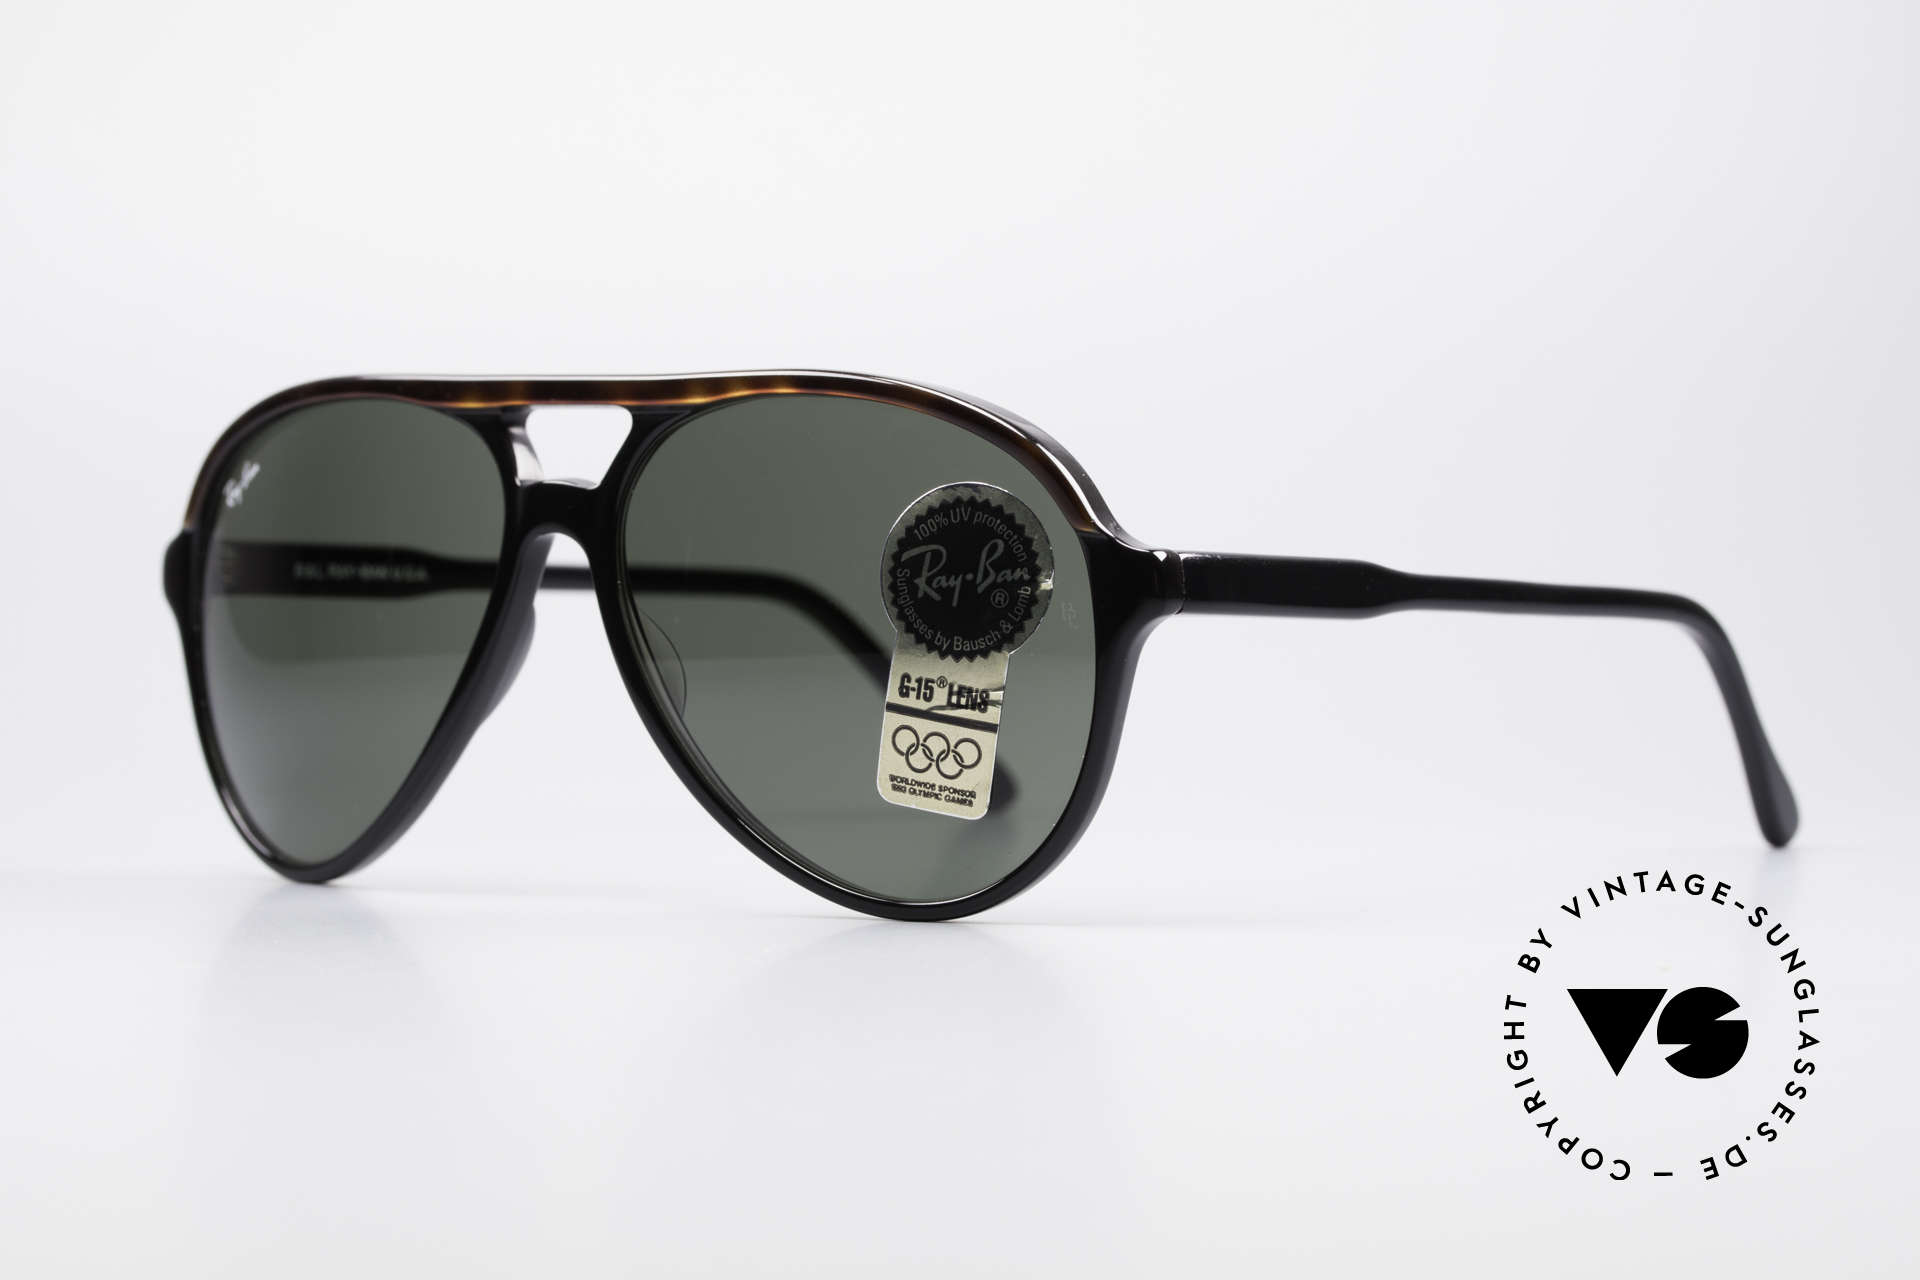 Ray Ban Traditionals Style A Old Aviator Sunglasses USA, top quality; mineral lenses  with the legendary B&L, Made for Men